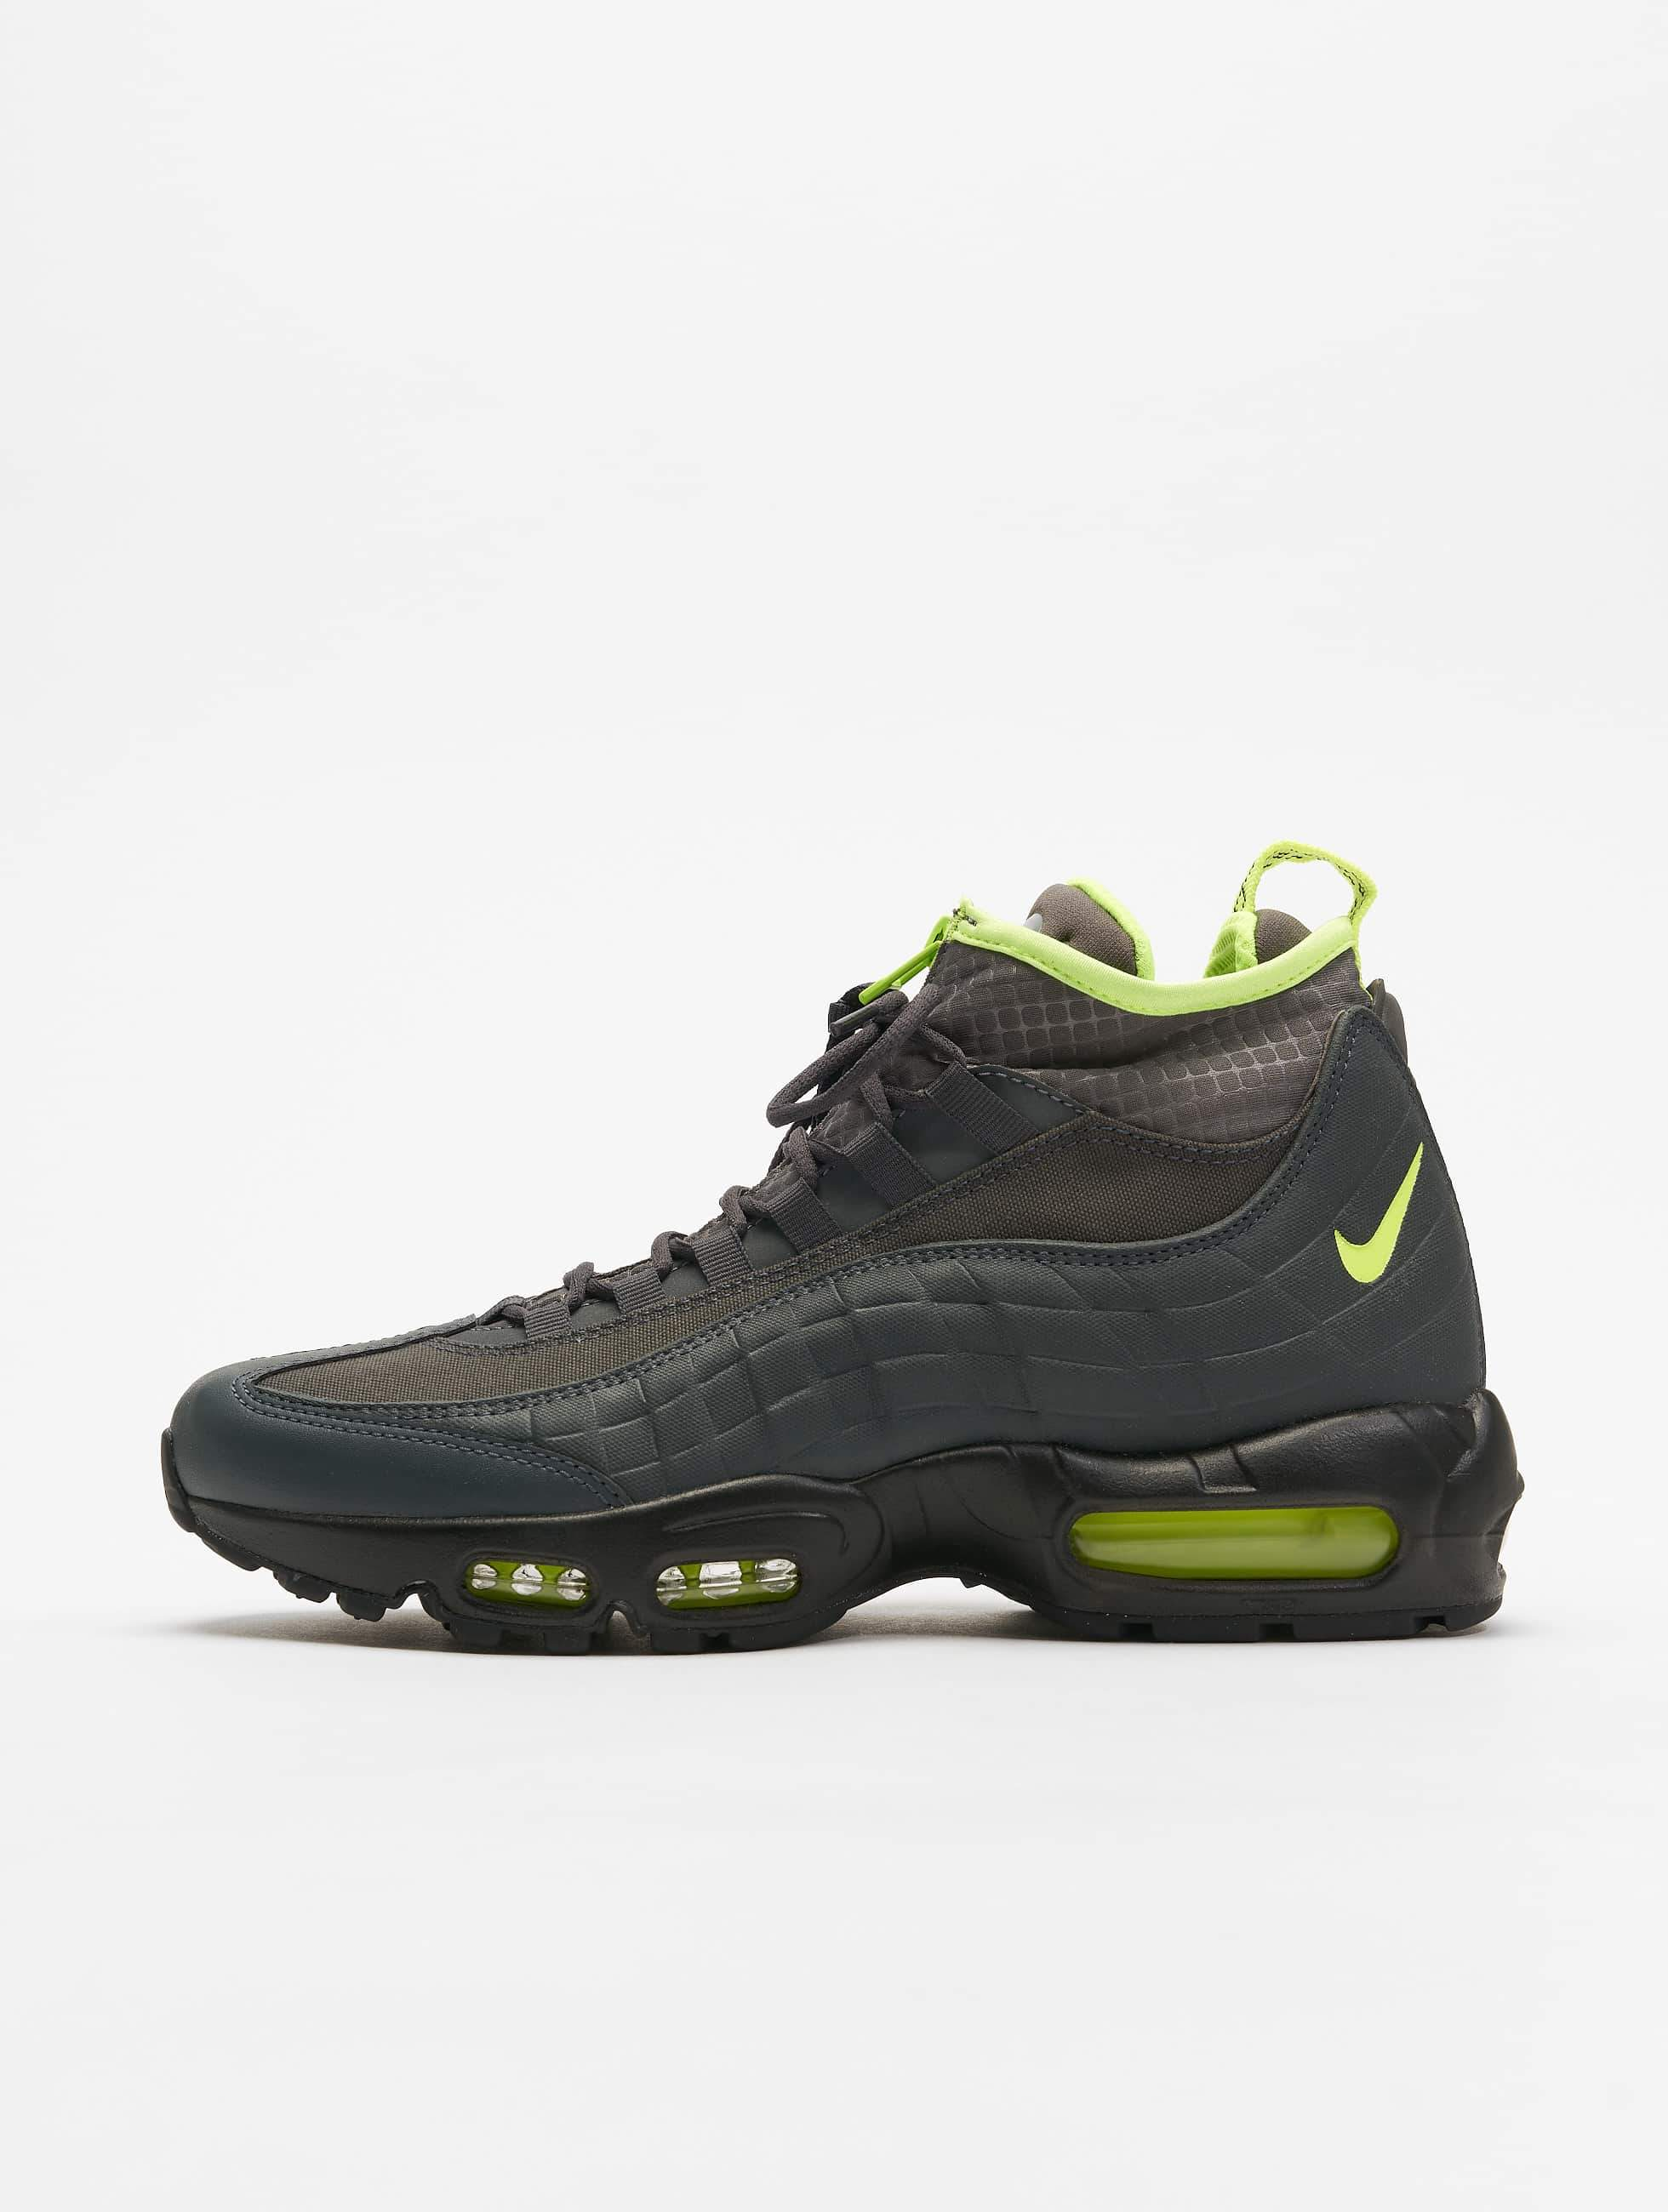 info for 0fa12 55096 Nike schoen / sneaker Air Max 95 in grijs 539993